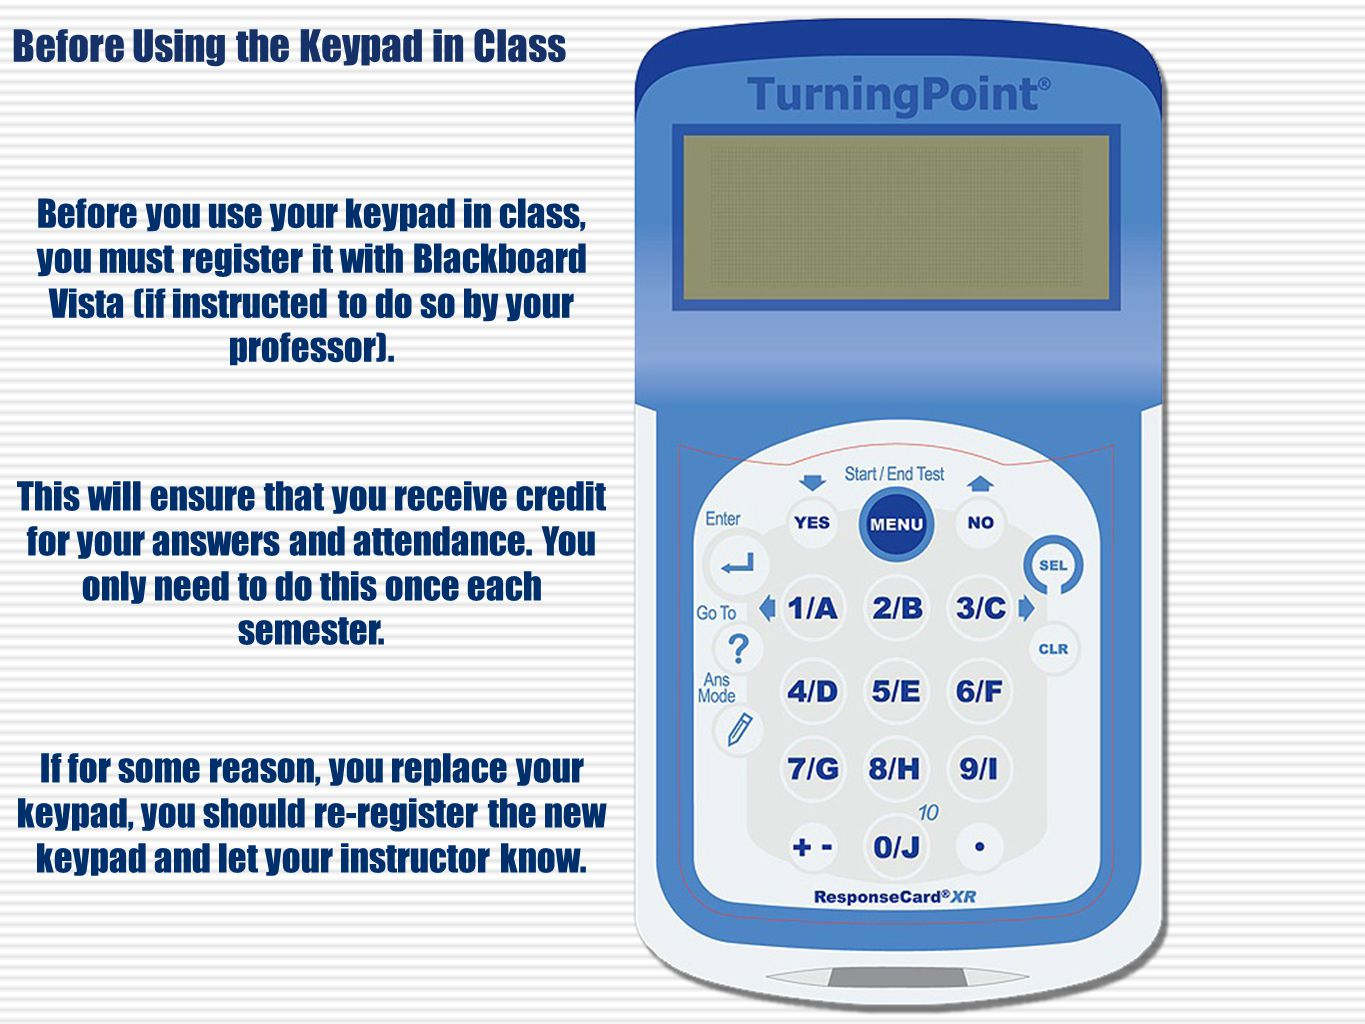 Before Using the Keypad in Class Before you use your keypad in class, you must register it with Blackboard Vista (if instructed to do so by your professor).